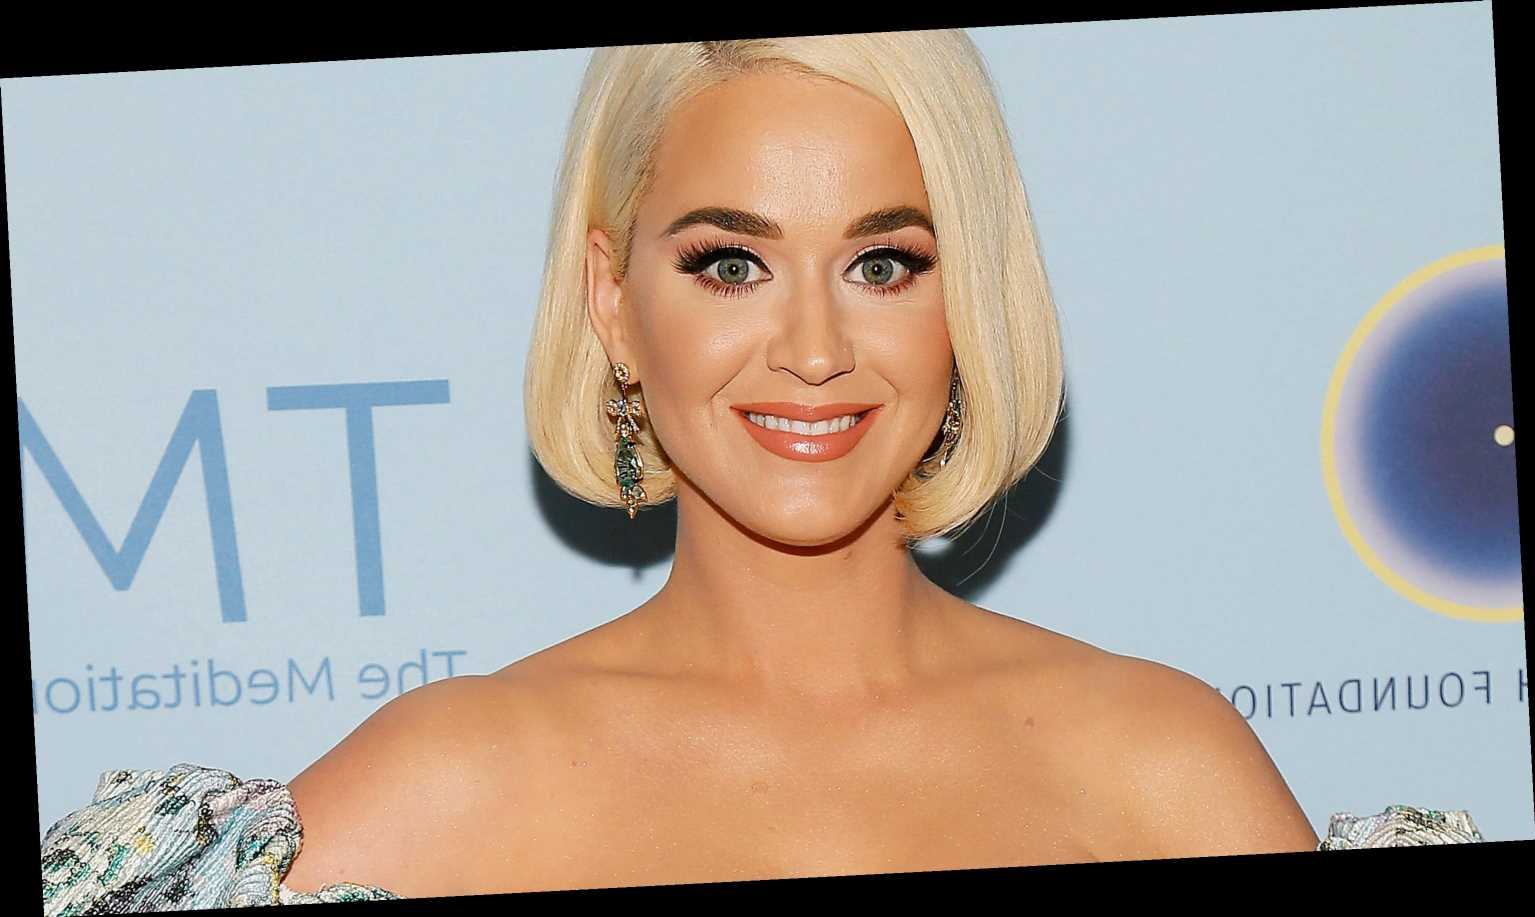 Katy Perry rings in birthday with a tropical bathing suit photo: '35 and never more alive'